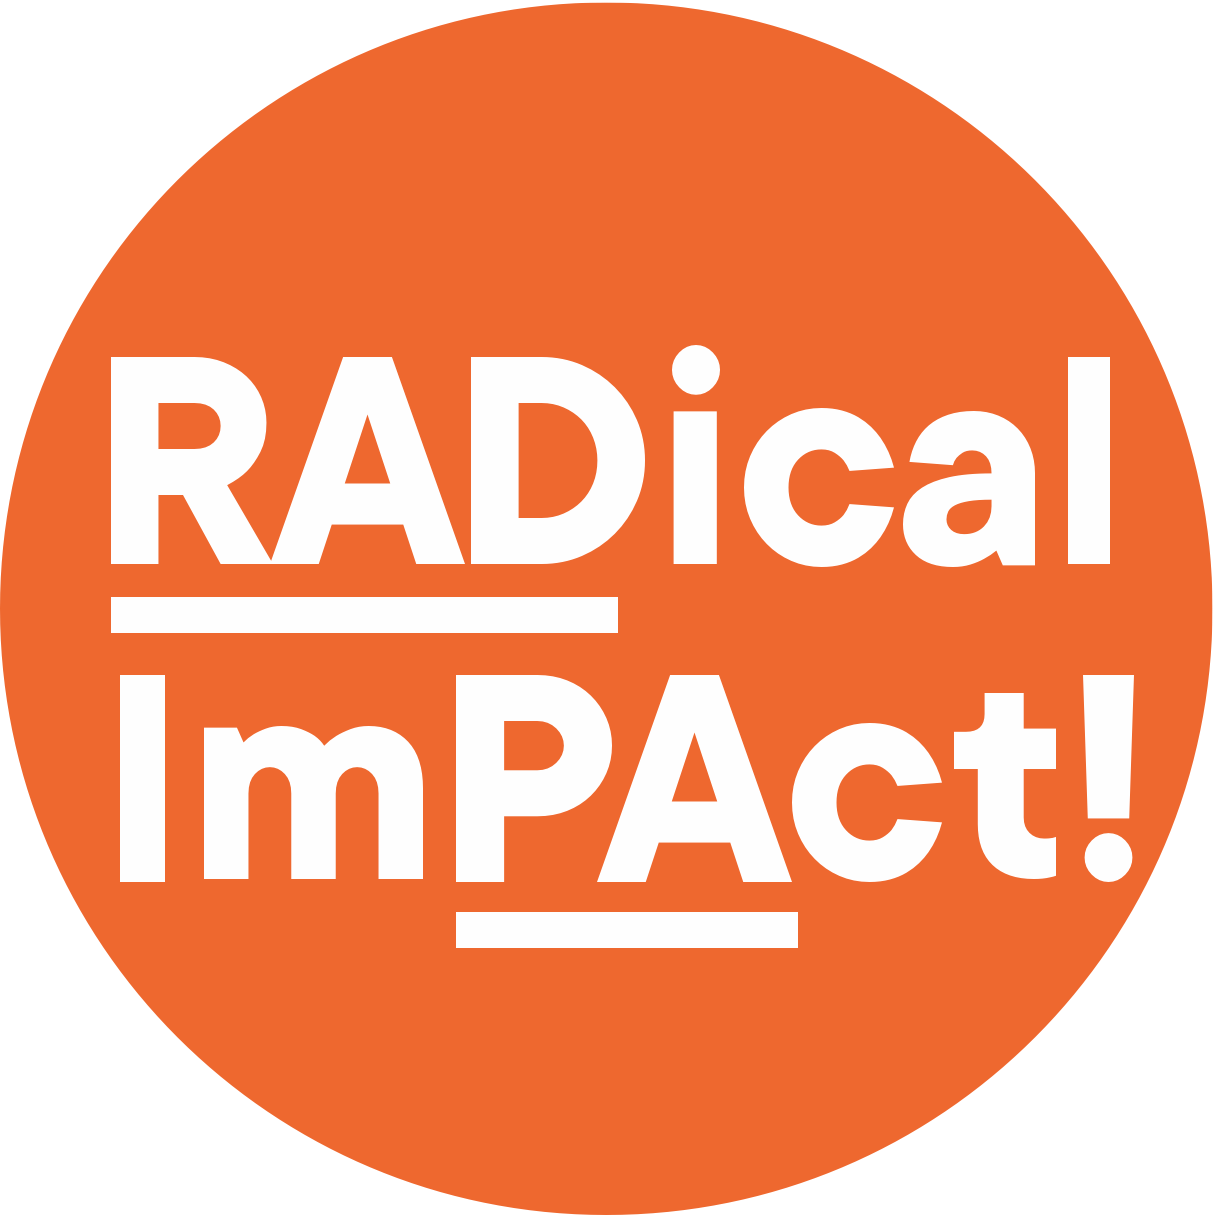 Orange circle with text: RADical ImPAct!